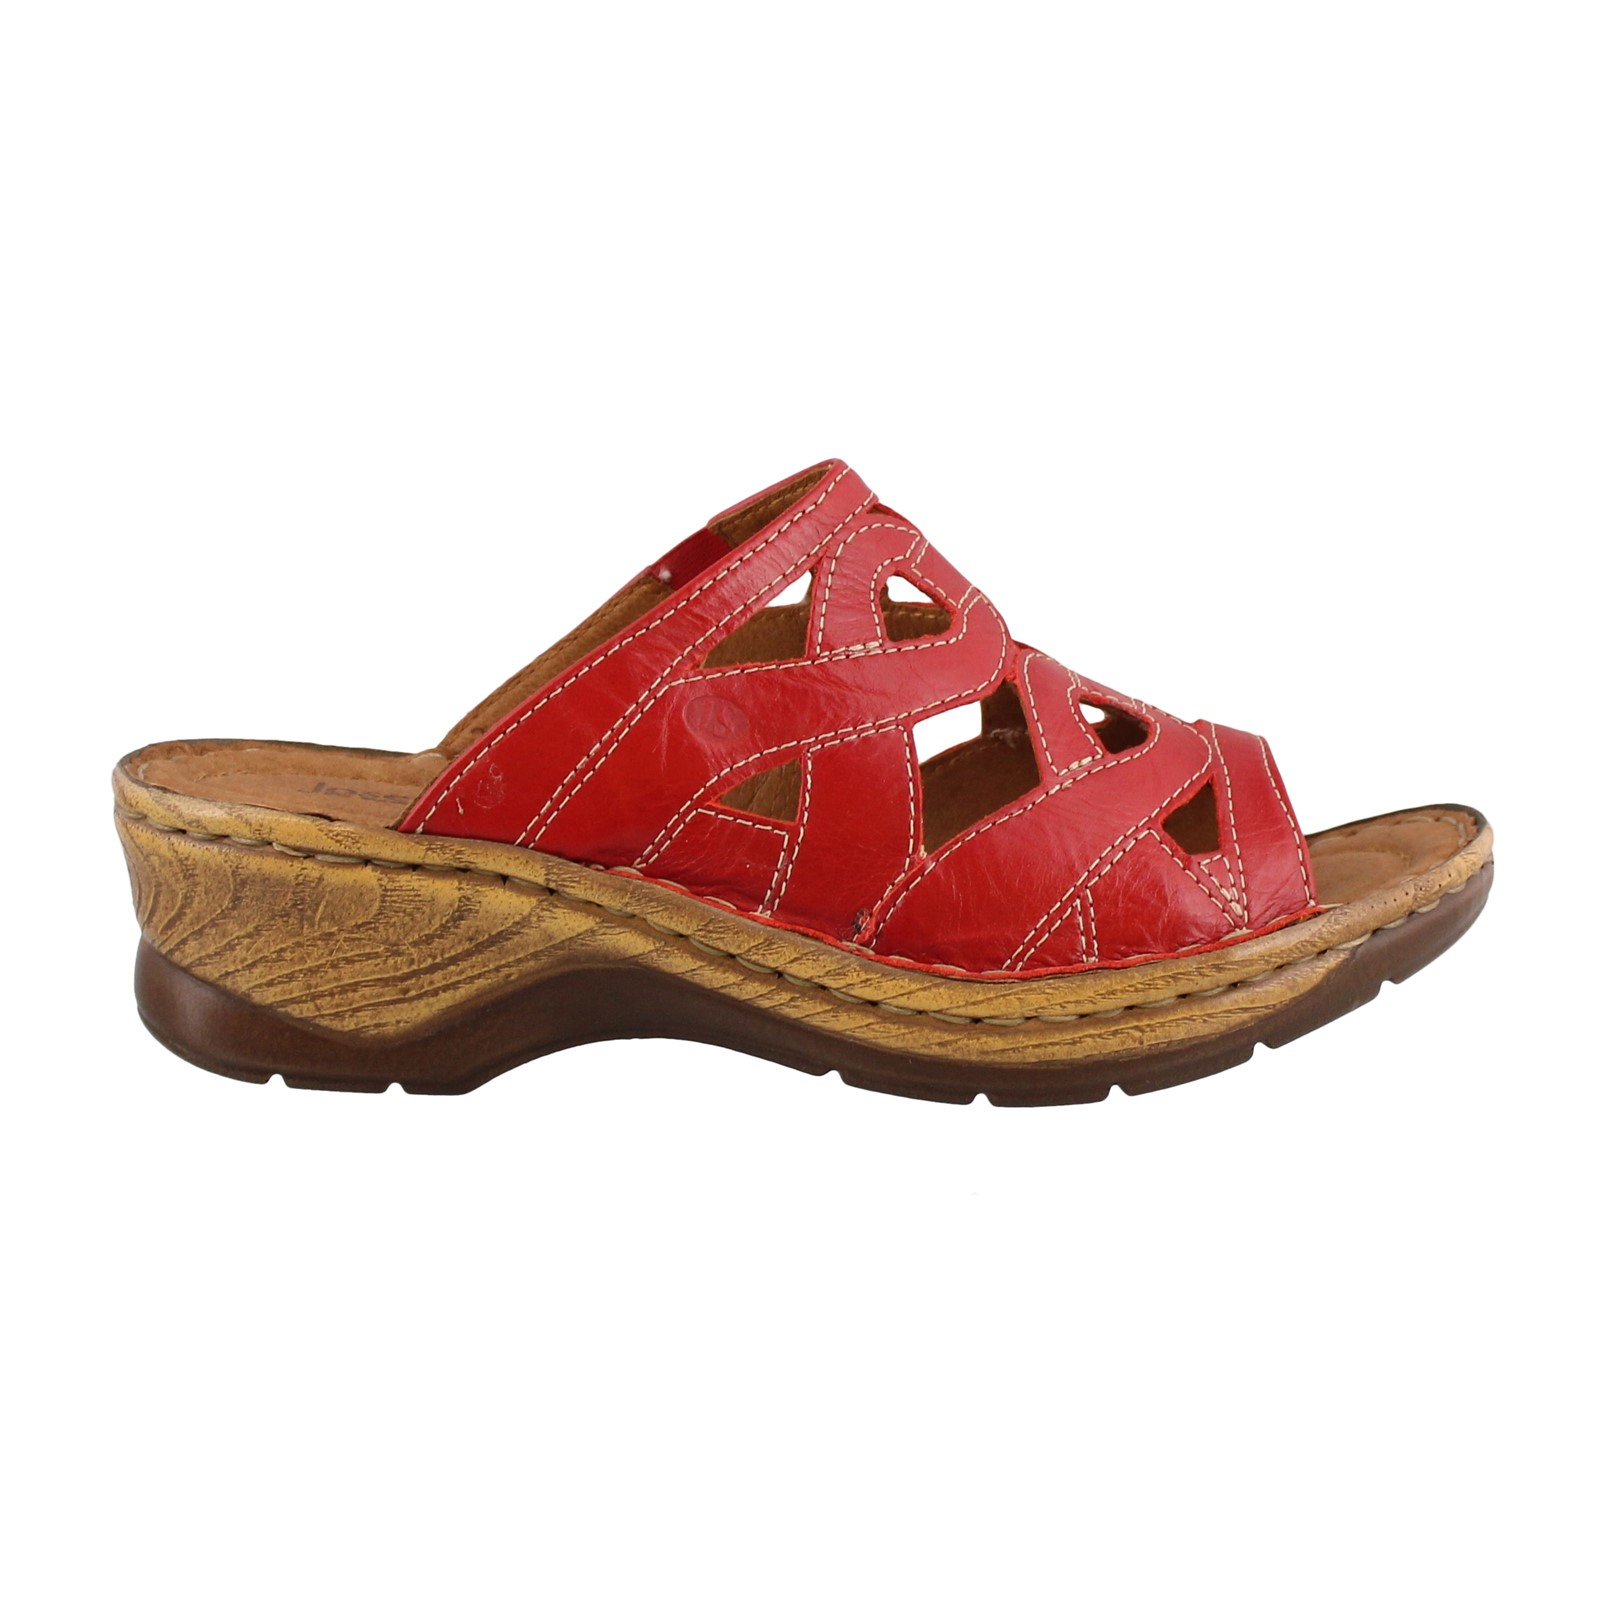 4b799cb005e0f Home; Women's Josef Seibel, Catalonia 44 Mid Heel Sandals. Previous.  default view ...